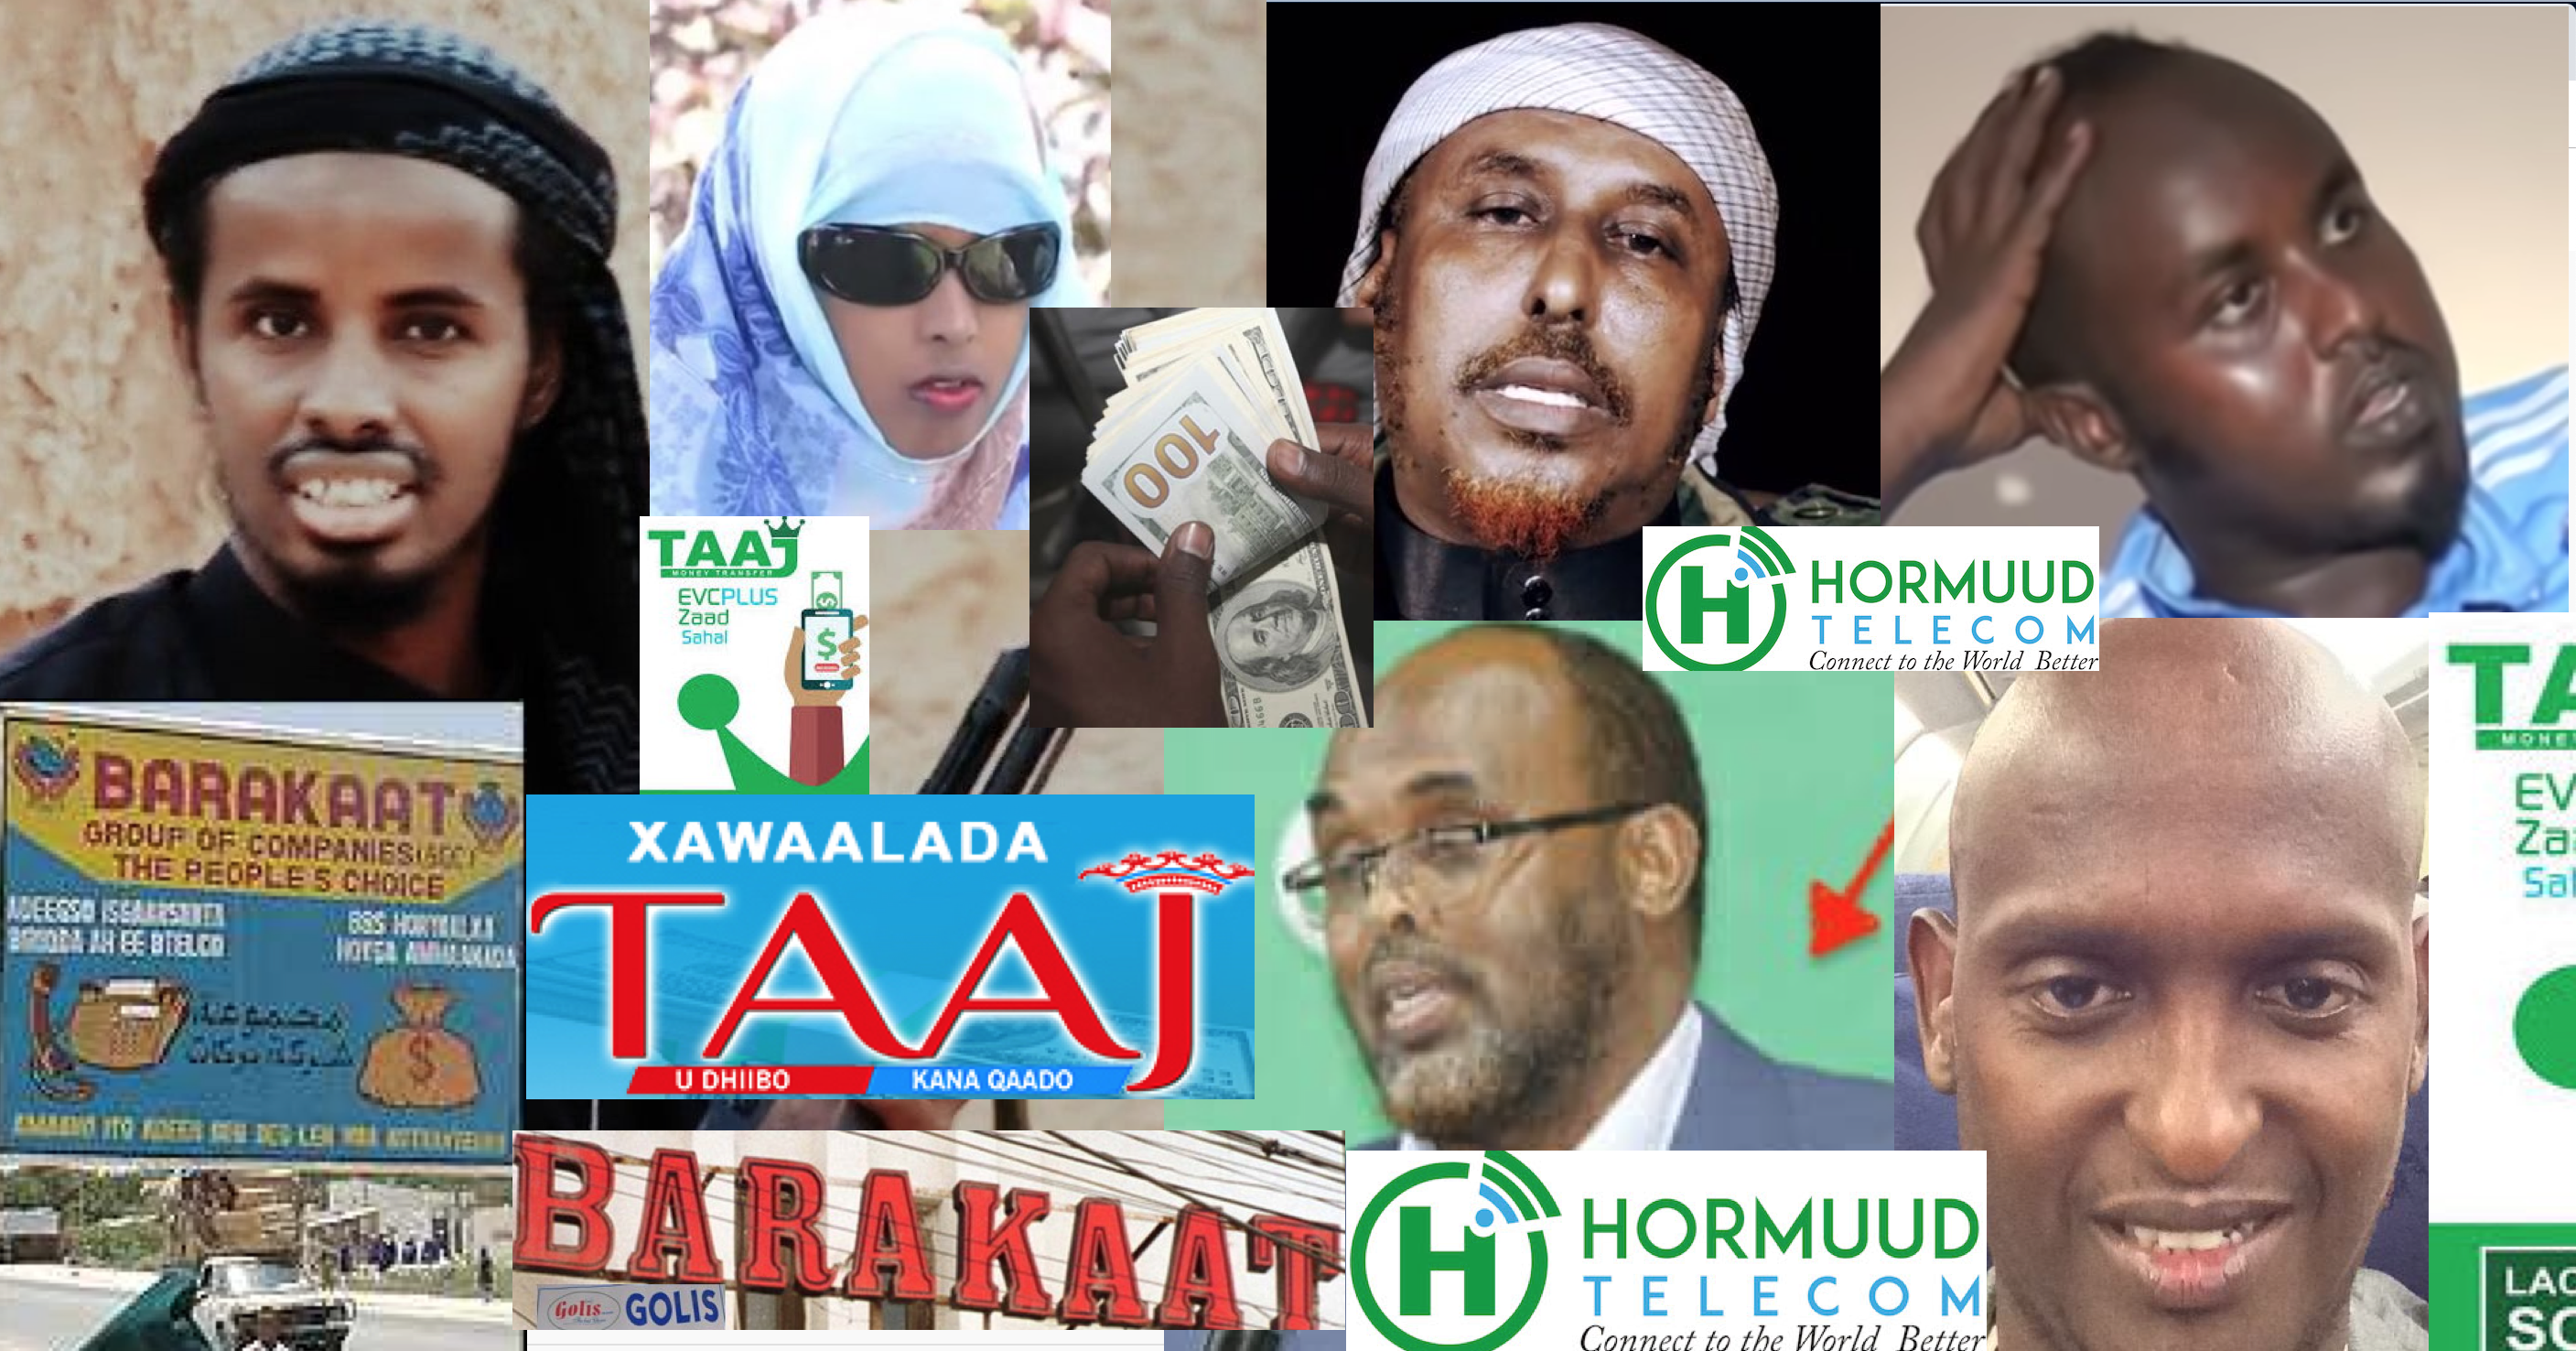 Somalia:Hormuud Telecom is the backbone of the terrorists in east and Horn of Africa